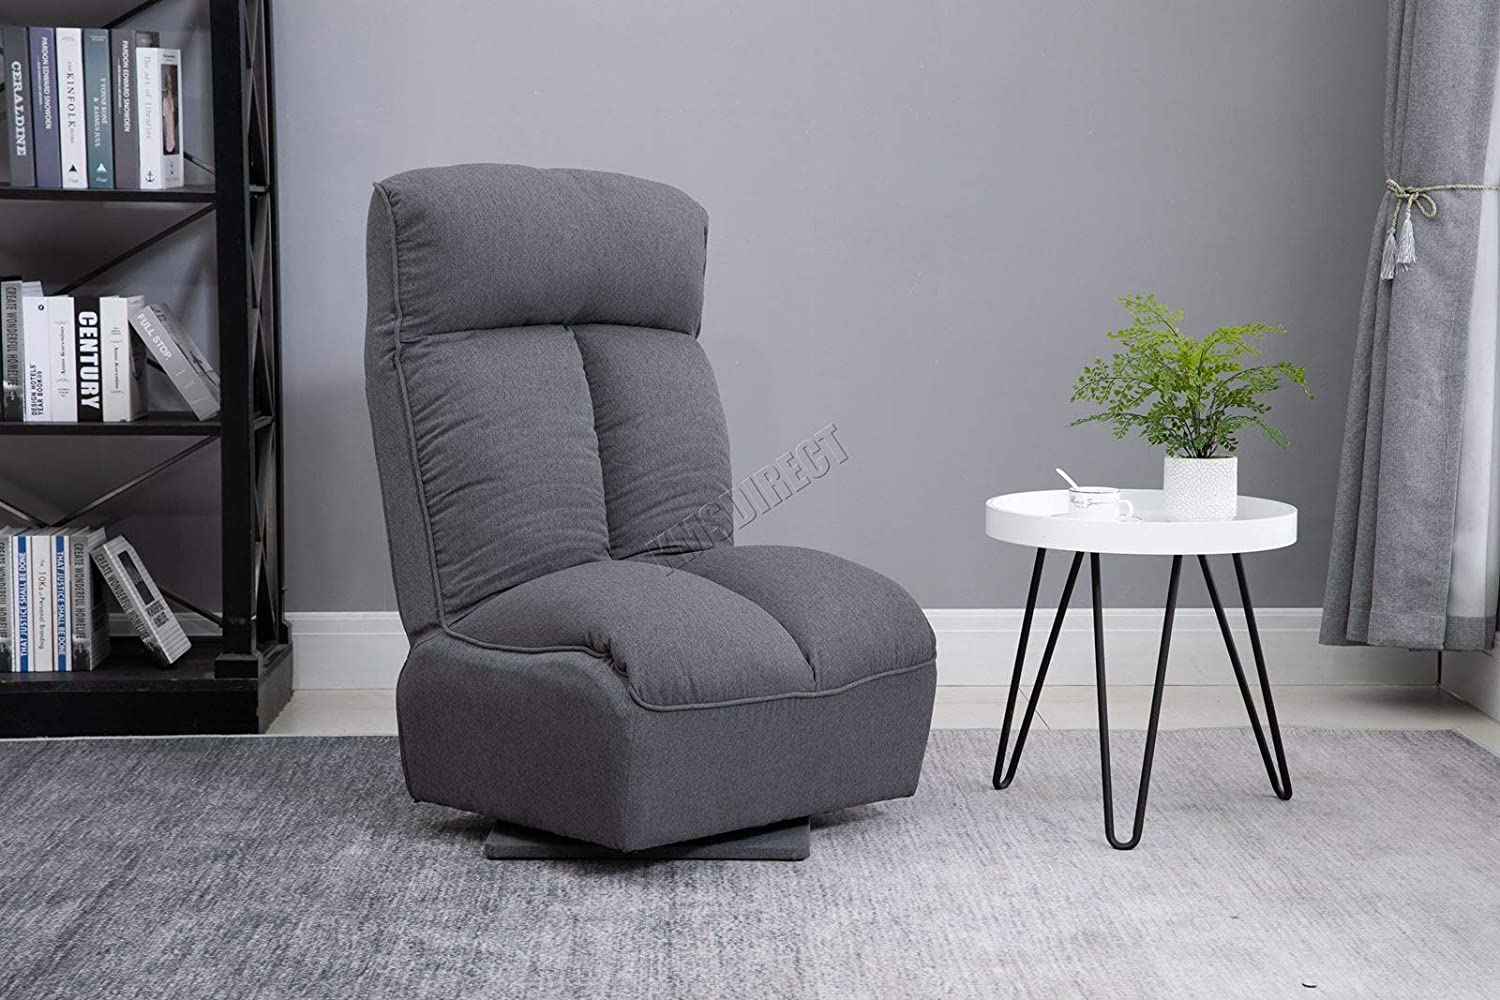 WestWood Floor Lazy Sofa Multi Adjustable Backrest and Headrest 360 Degree Swivel Recliner Chair Livingroom Restroom WW-9100 Grey